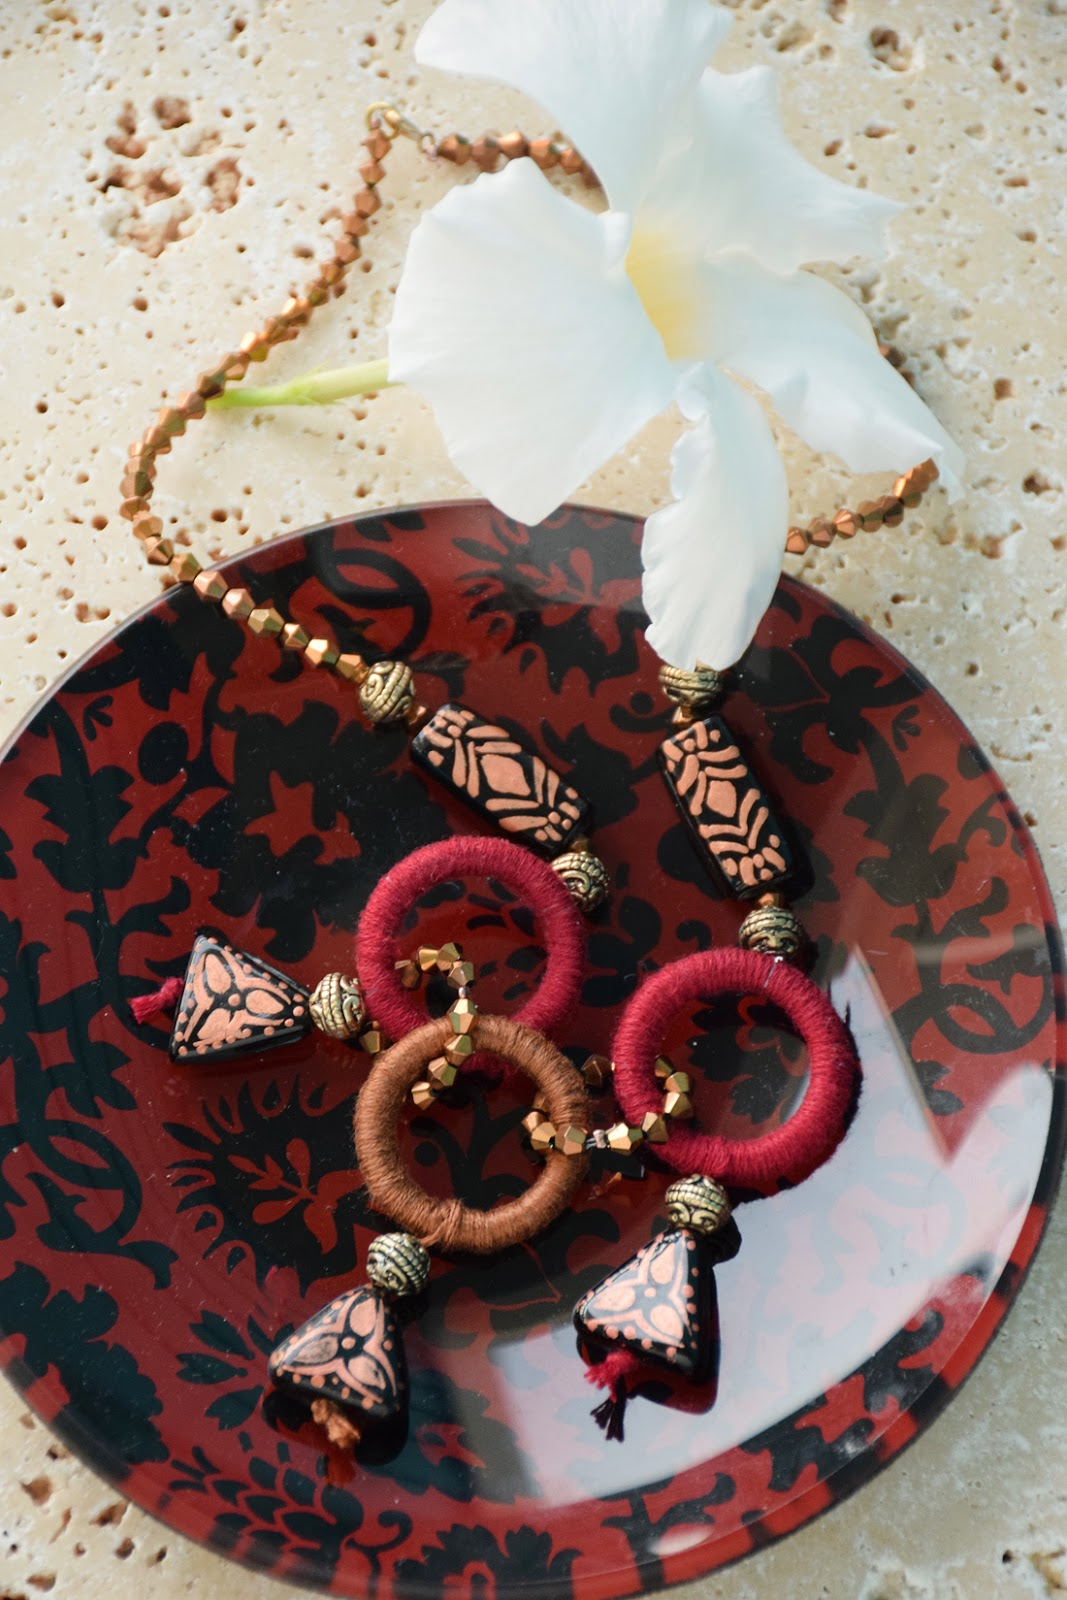 Alina necklace diy by Allison Beth Cooling